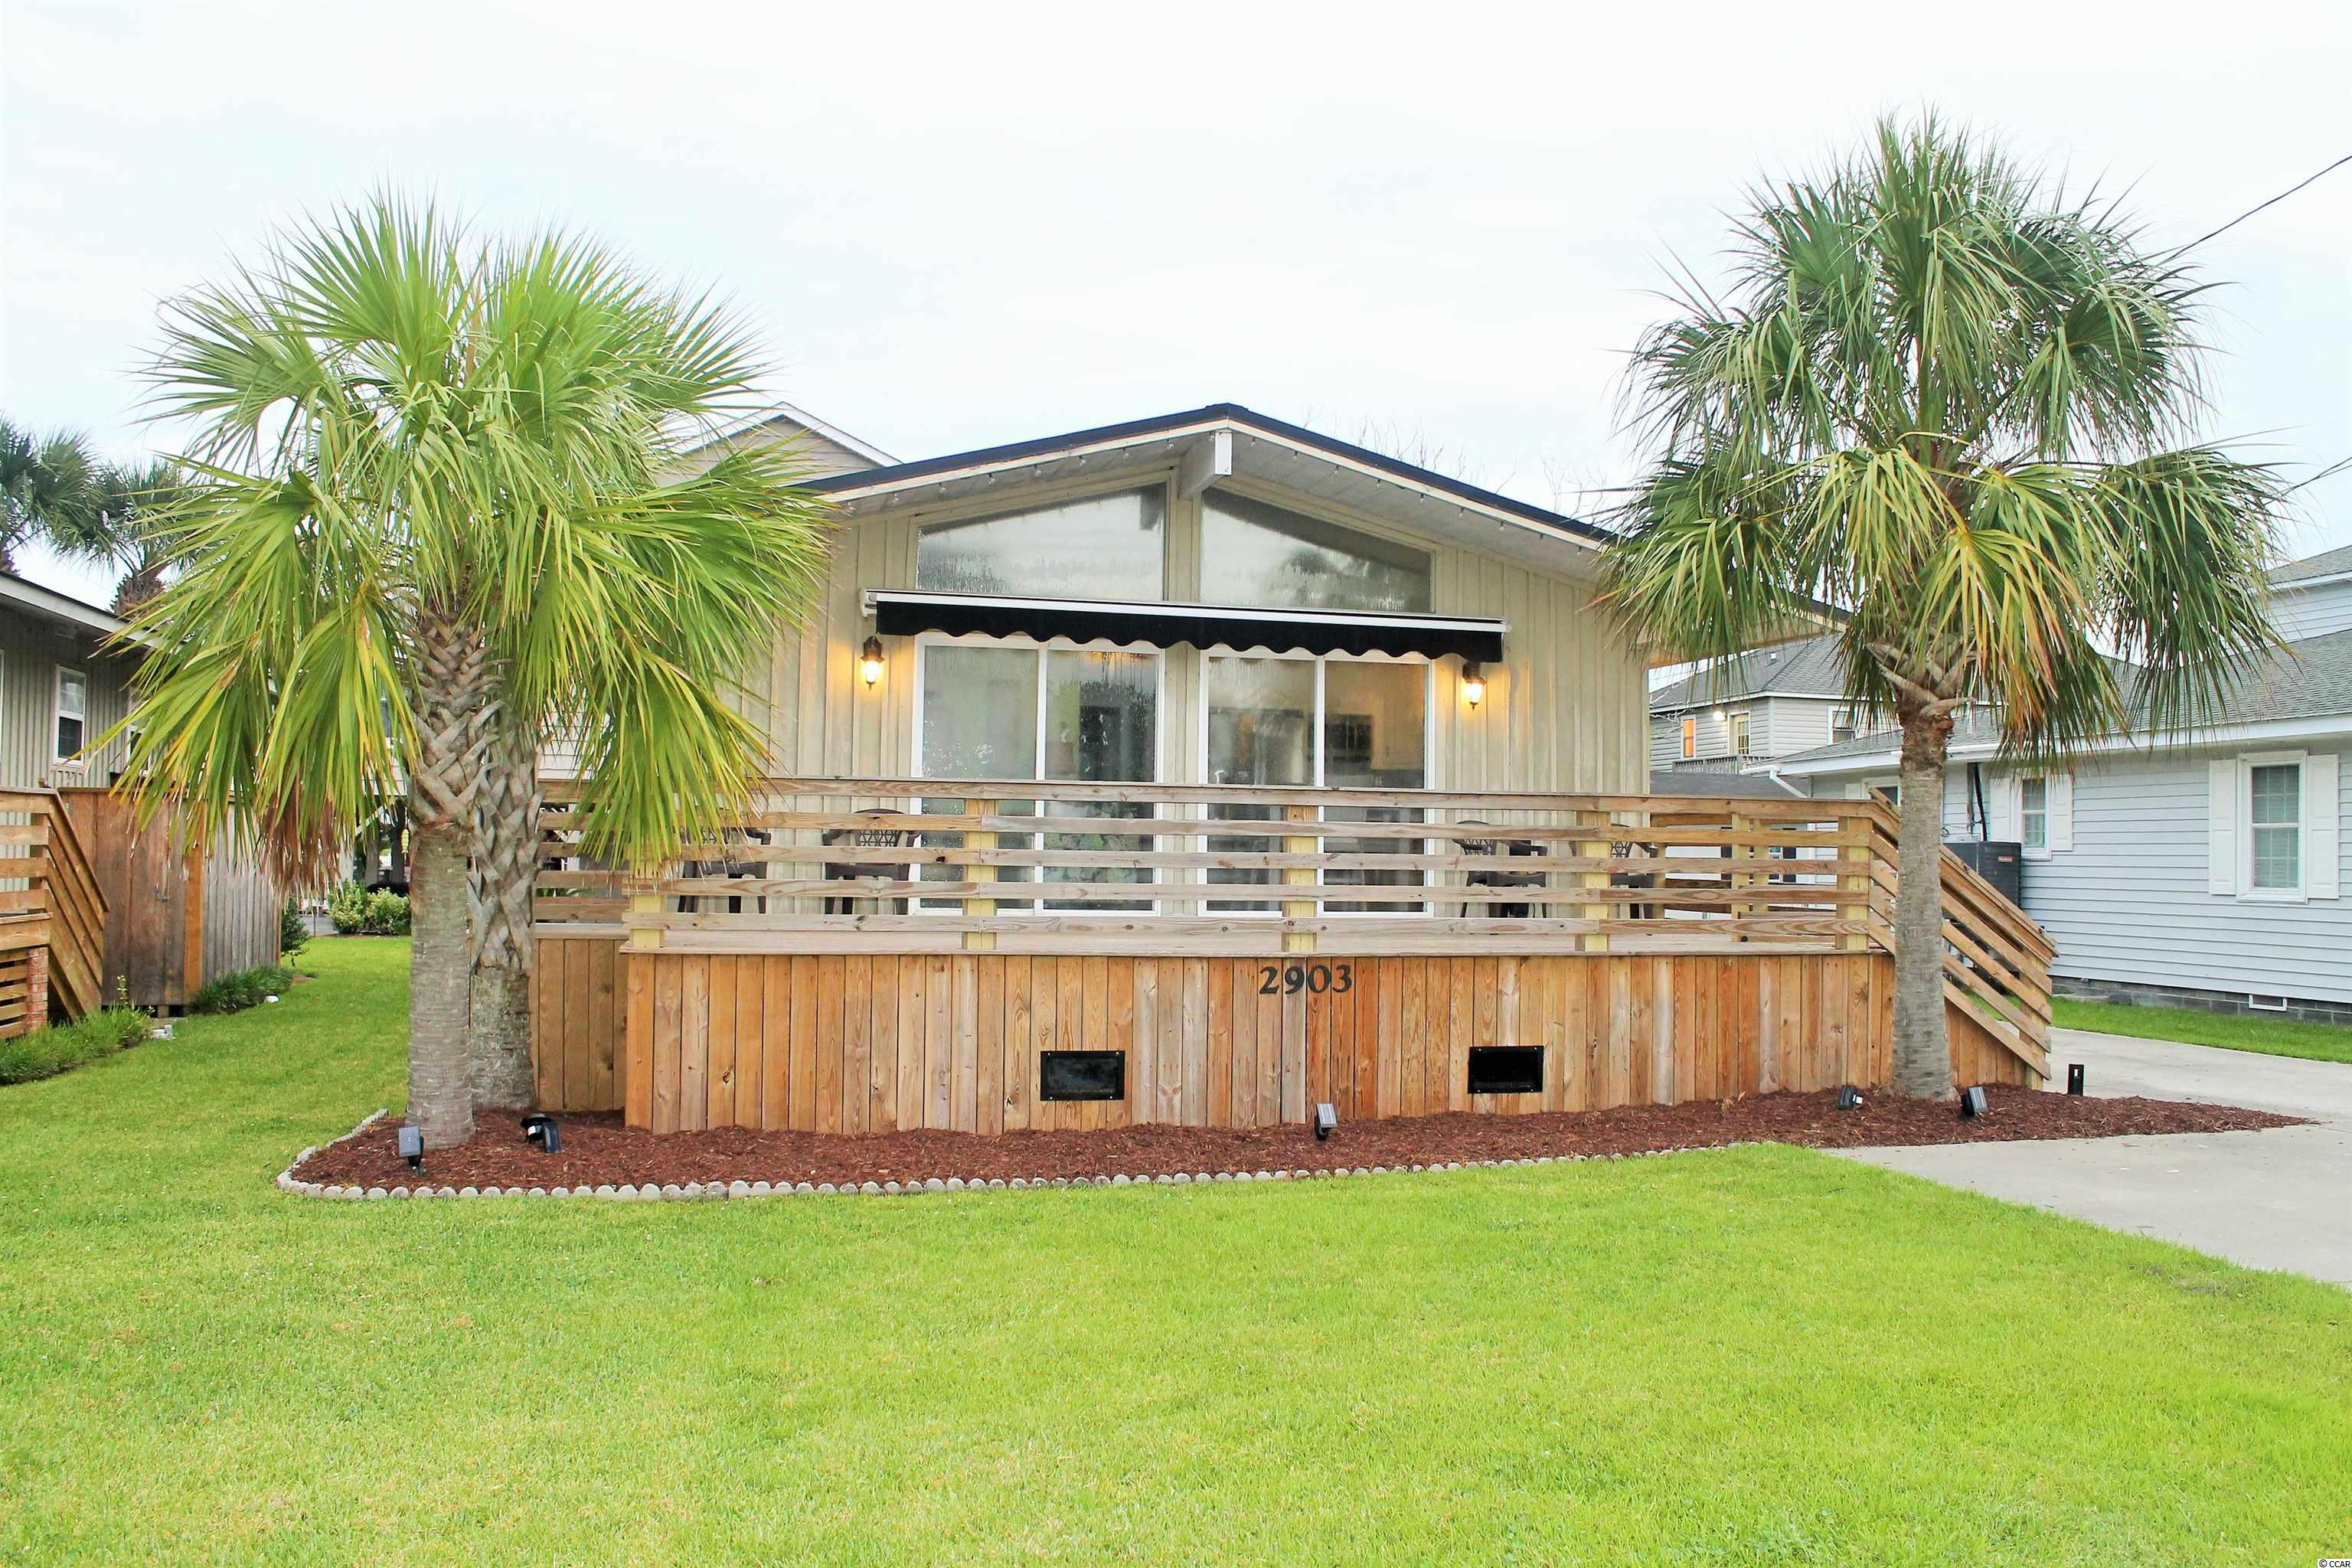 Absolutely beautiful beach cottage two blocks from the beach in desirable Cherry Grove in North Myrtle Beach! Home has been completely remodeled and offers 4 bedrooms and 2 full baths. Kitchen has stainless steel appliances, new cabinets and granite countertops. Brand new carpet in the bedrooms, new flooring in the living room and kitchen. Outdoor shower and detached garage are just the icing on the cake! Oversized awning creates plenty of shade to enjoy your morning coffee on the beautiful deck. This home will make a perfect vacation destination or a great rental property. It's a must see!!!